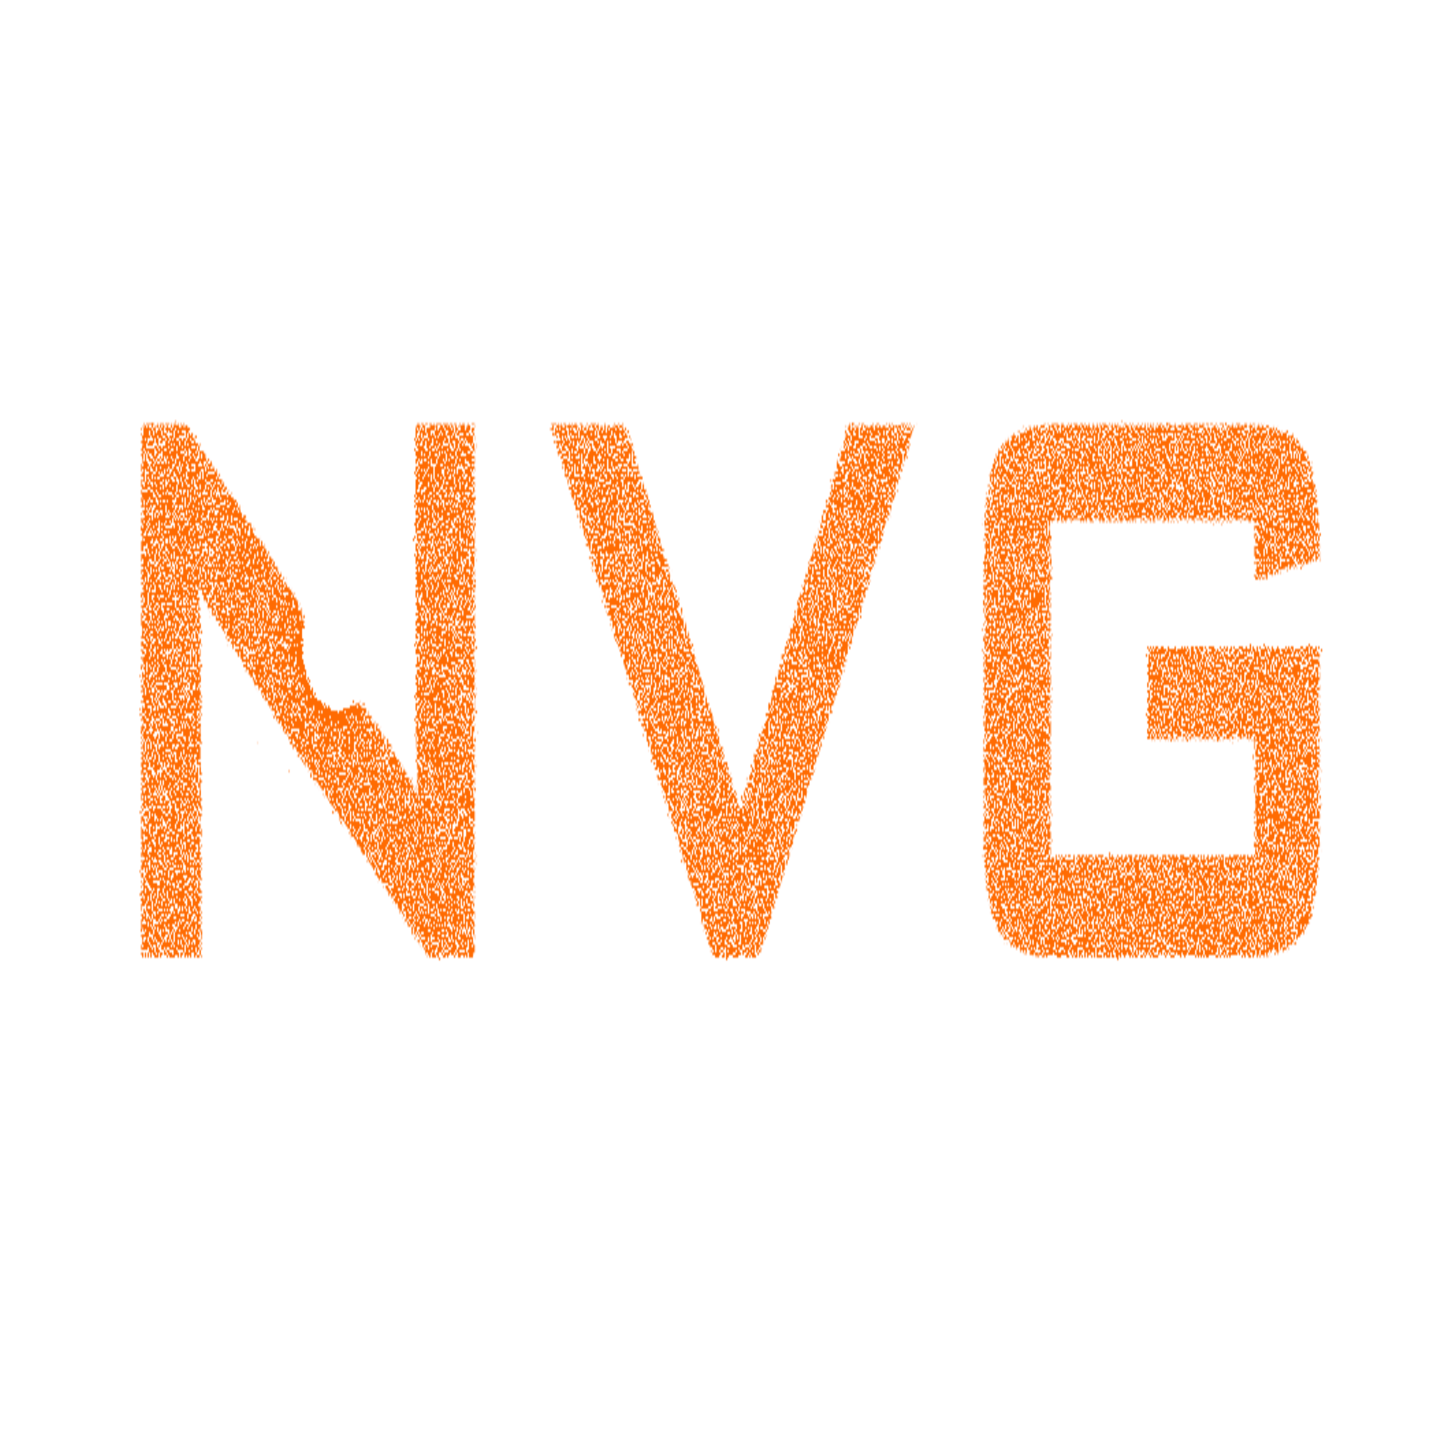 North Village Group - Elk Grove Village, IL - House Cleaning Services